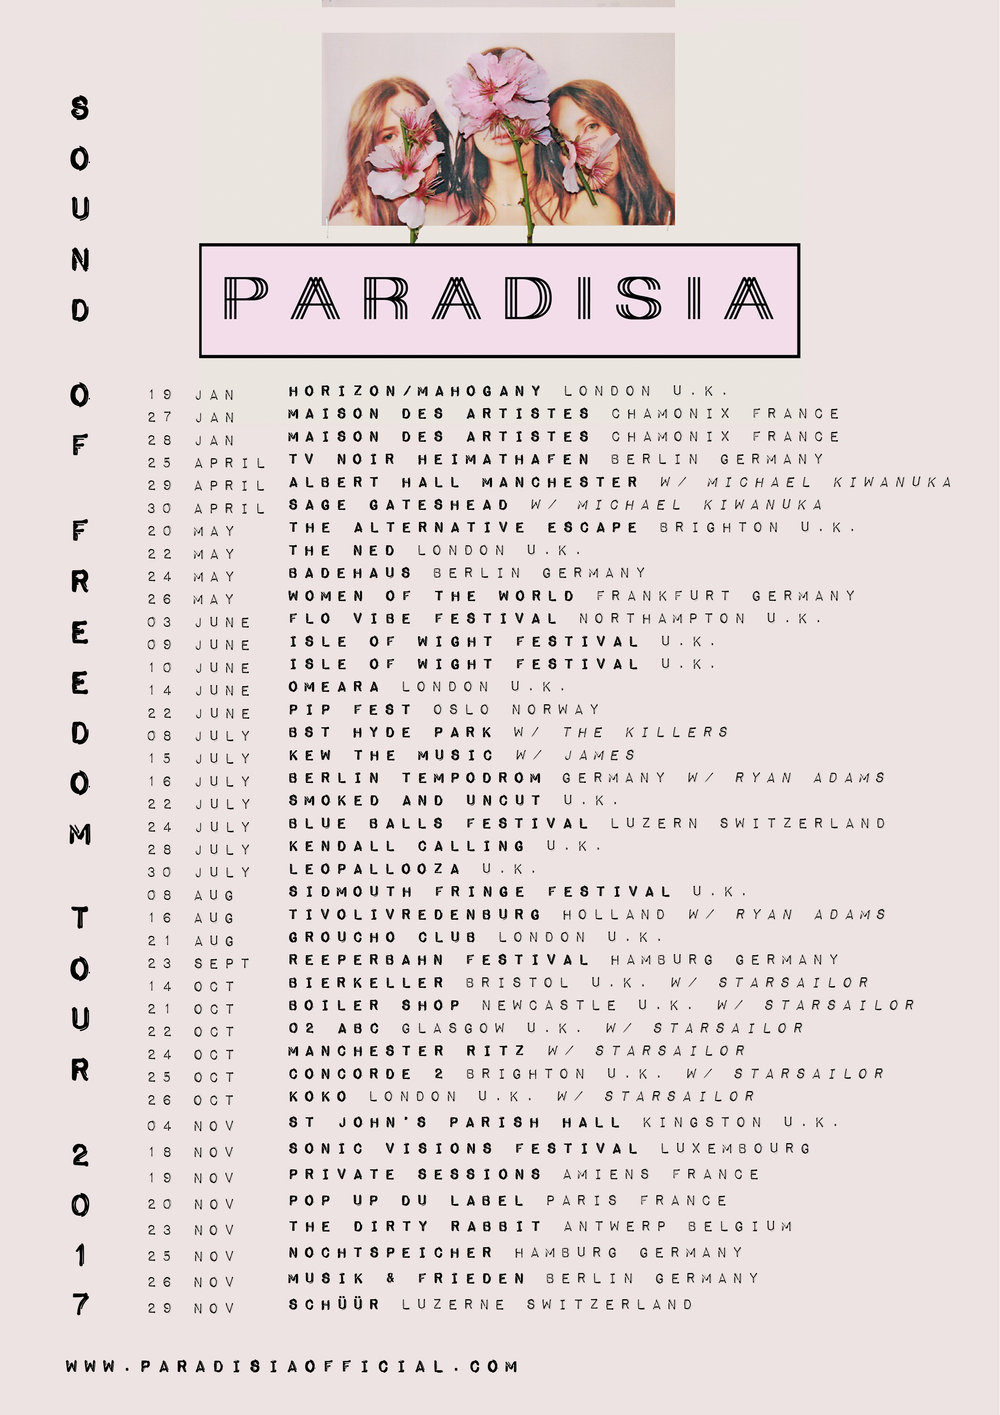 paadisia entire 2017 gigs poster.jpg